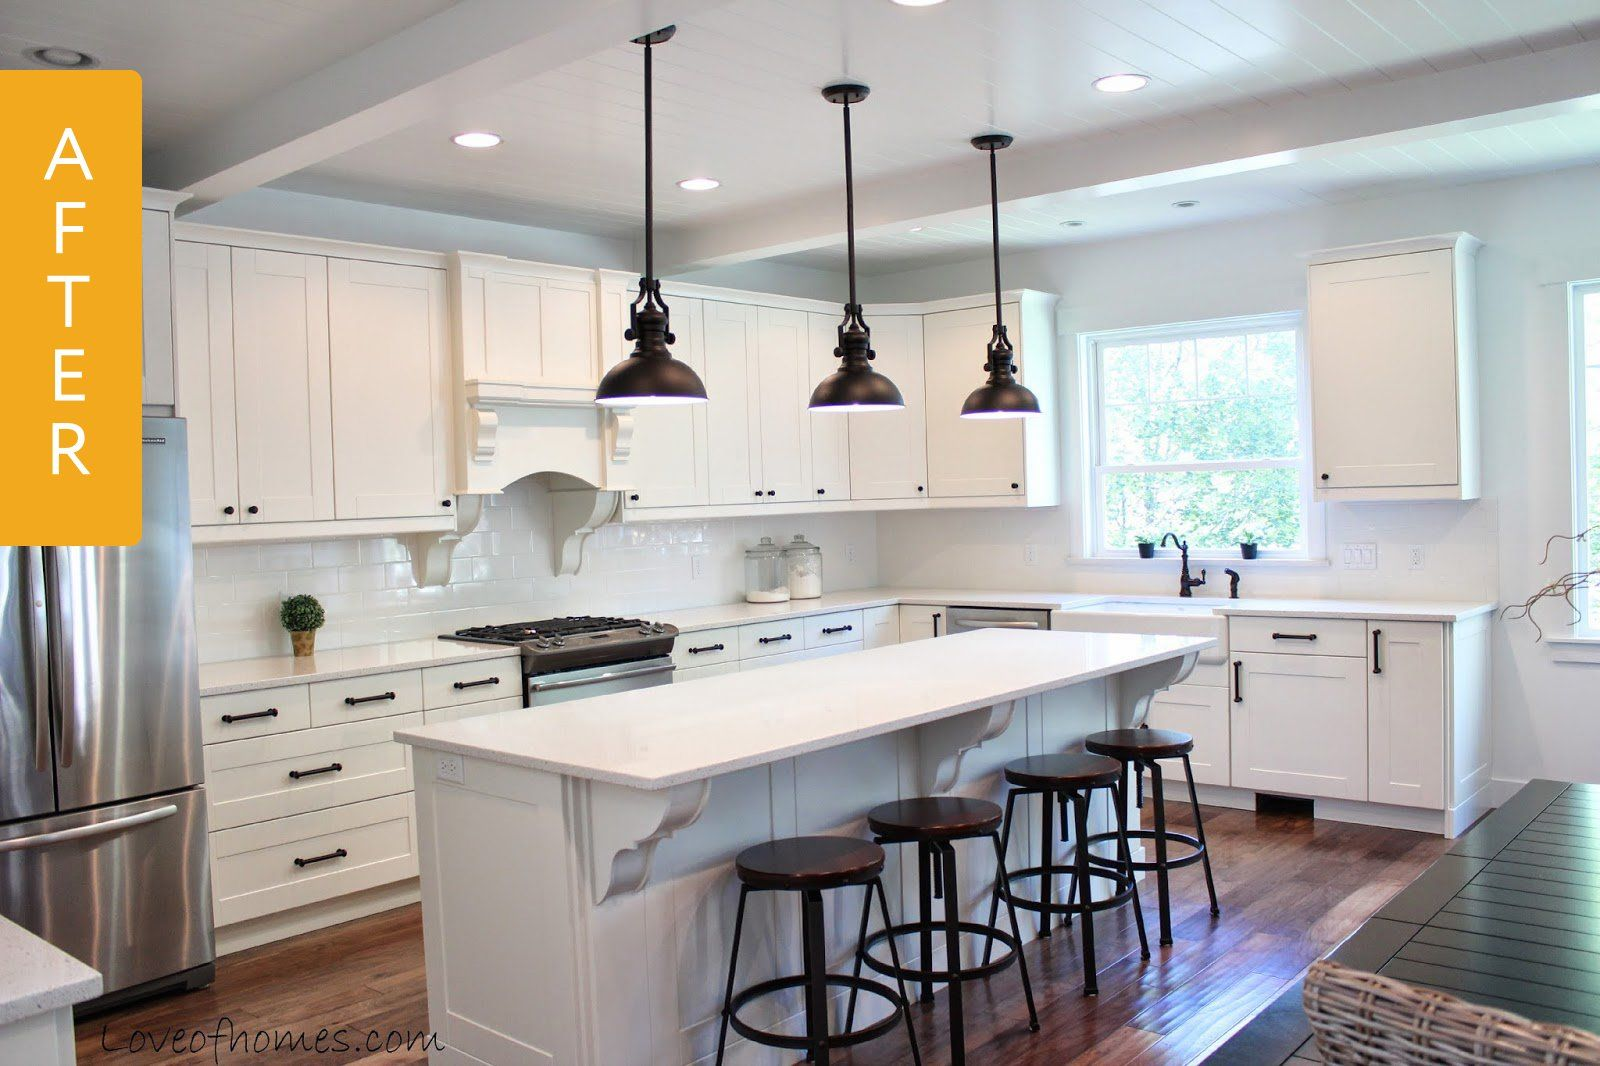 Kitchen Remodeling Leads Kitchen Before & After A Chaotic Remodel Leads To A Big Payoff .